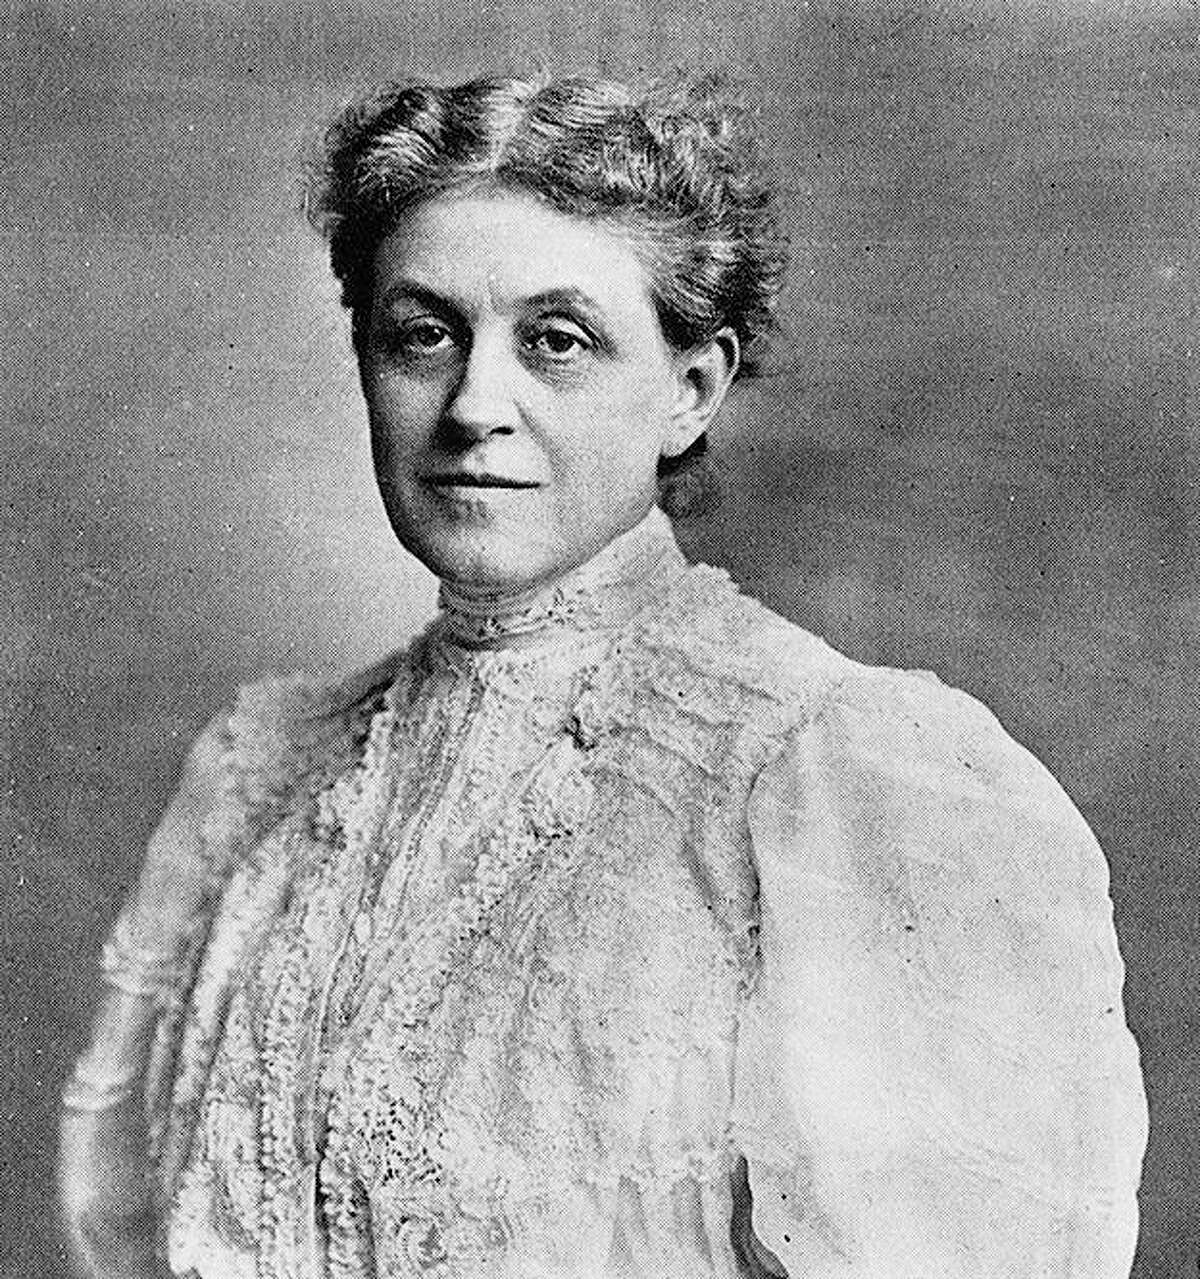 Carrie Lane Chapman Catt is being remembered as an international suffragan who helped make a difference in the passage of the 19th Amendment allowing women the right to vote at LSC Cy-Fair on March 27.